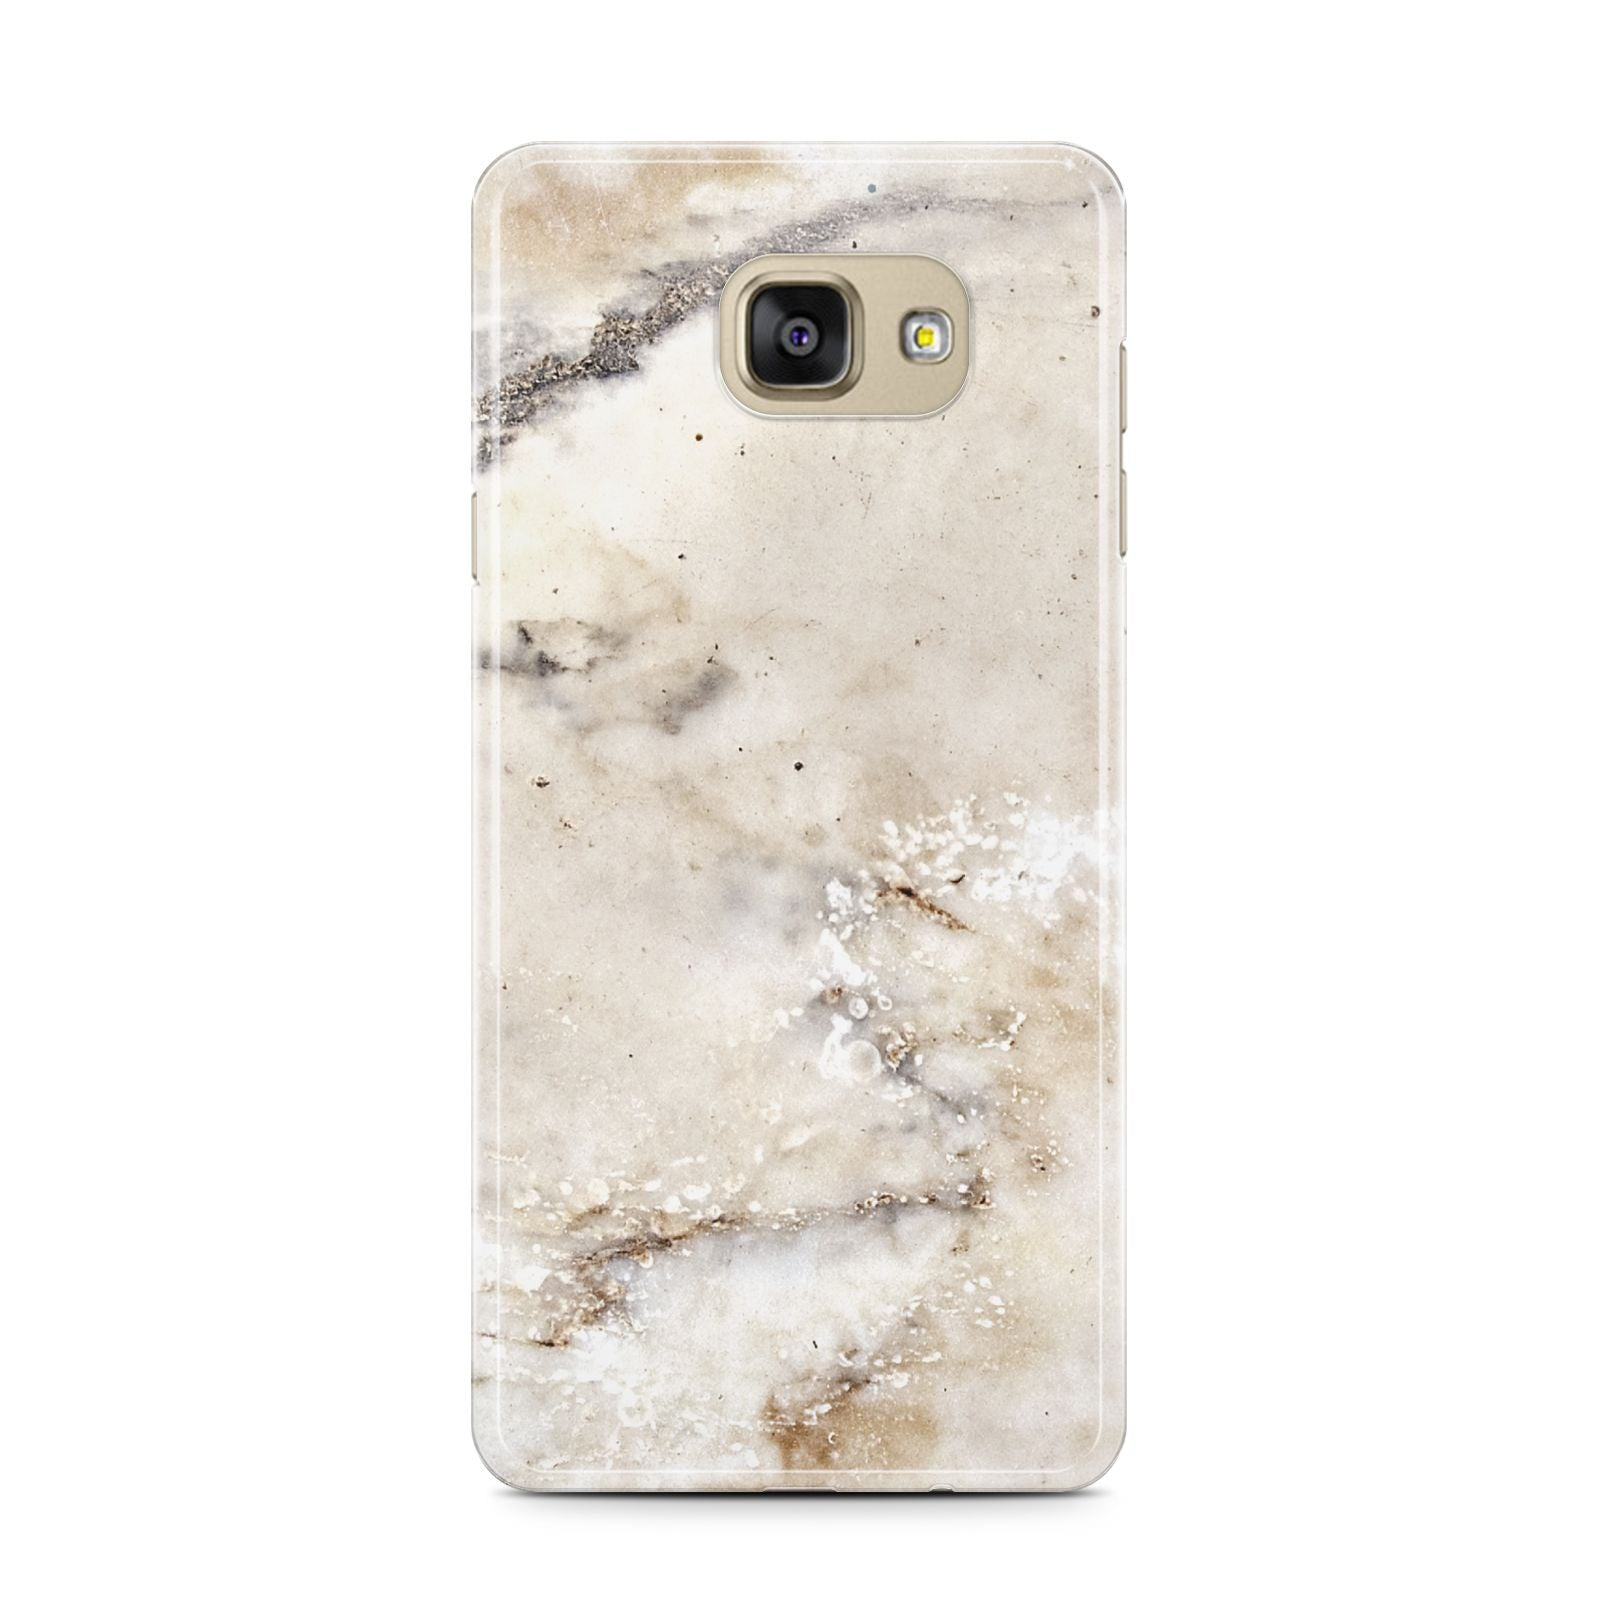 Faux Marble Effect Print Samsung Galaxy A7 2016 Case on gold phone